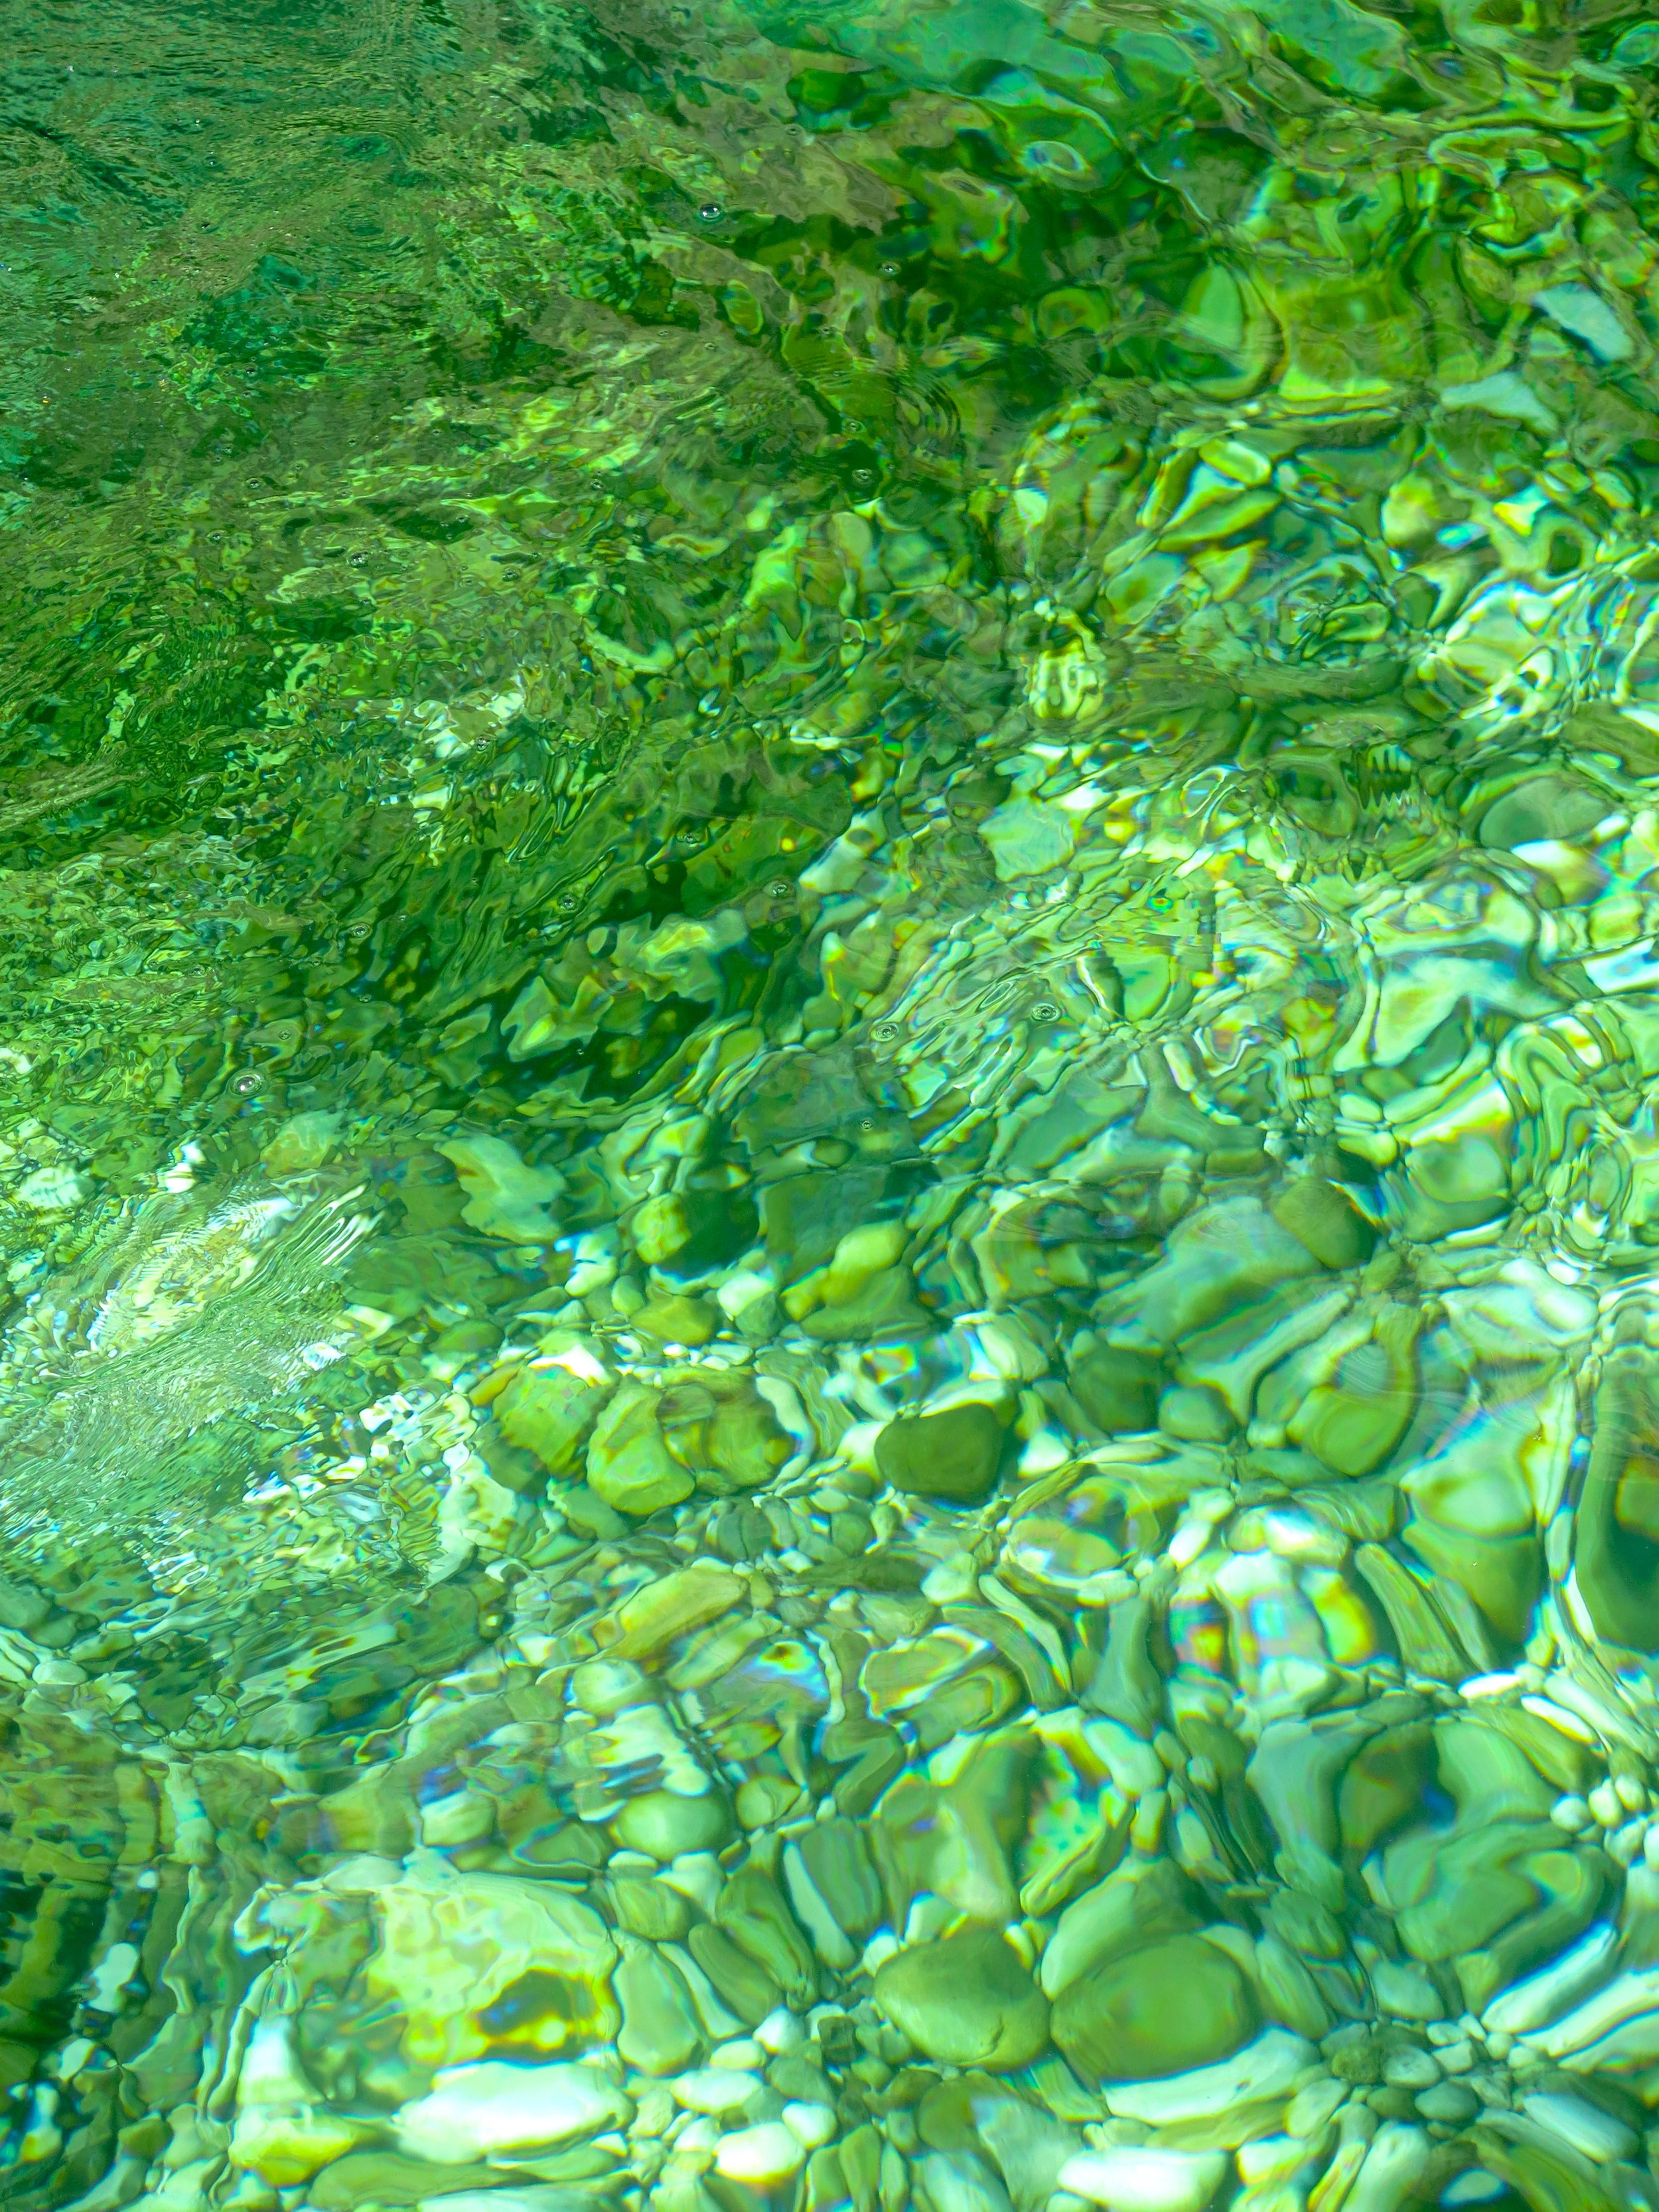 The water of Wadi Bani Khalid is pure and transparent